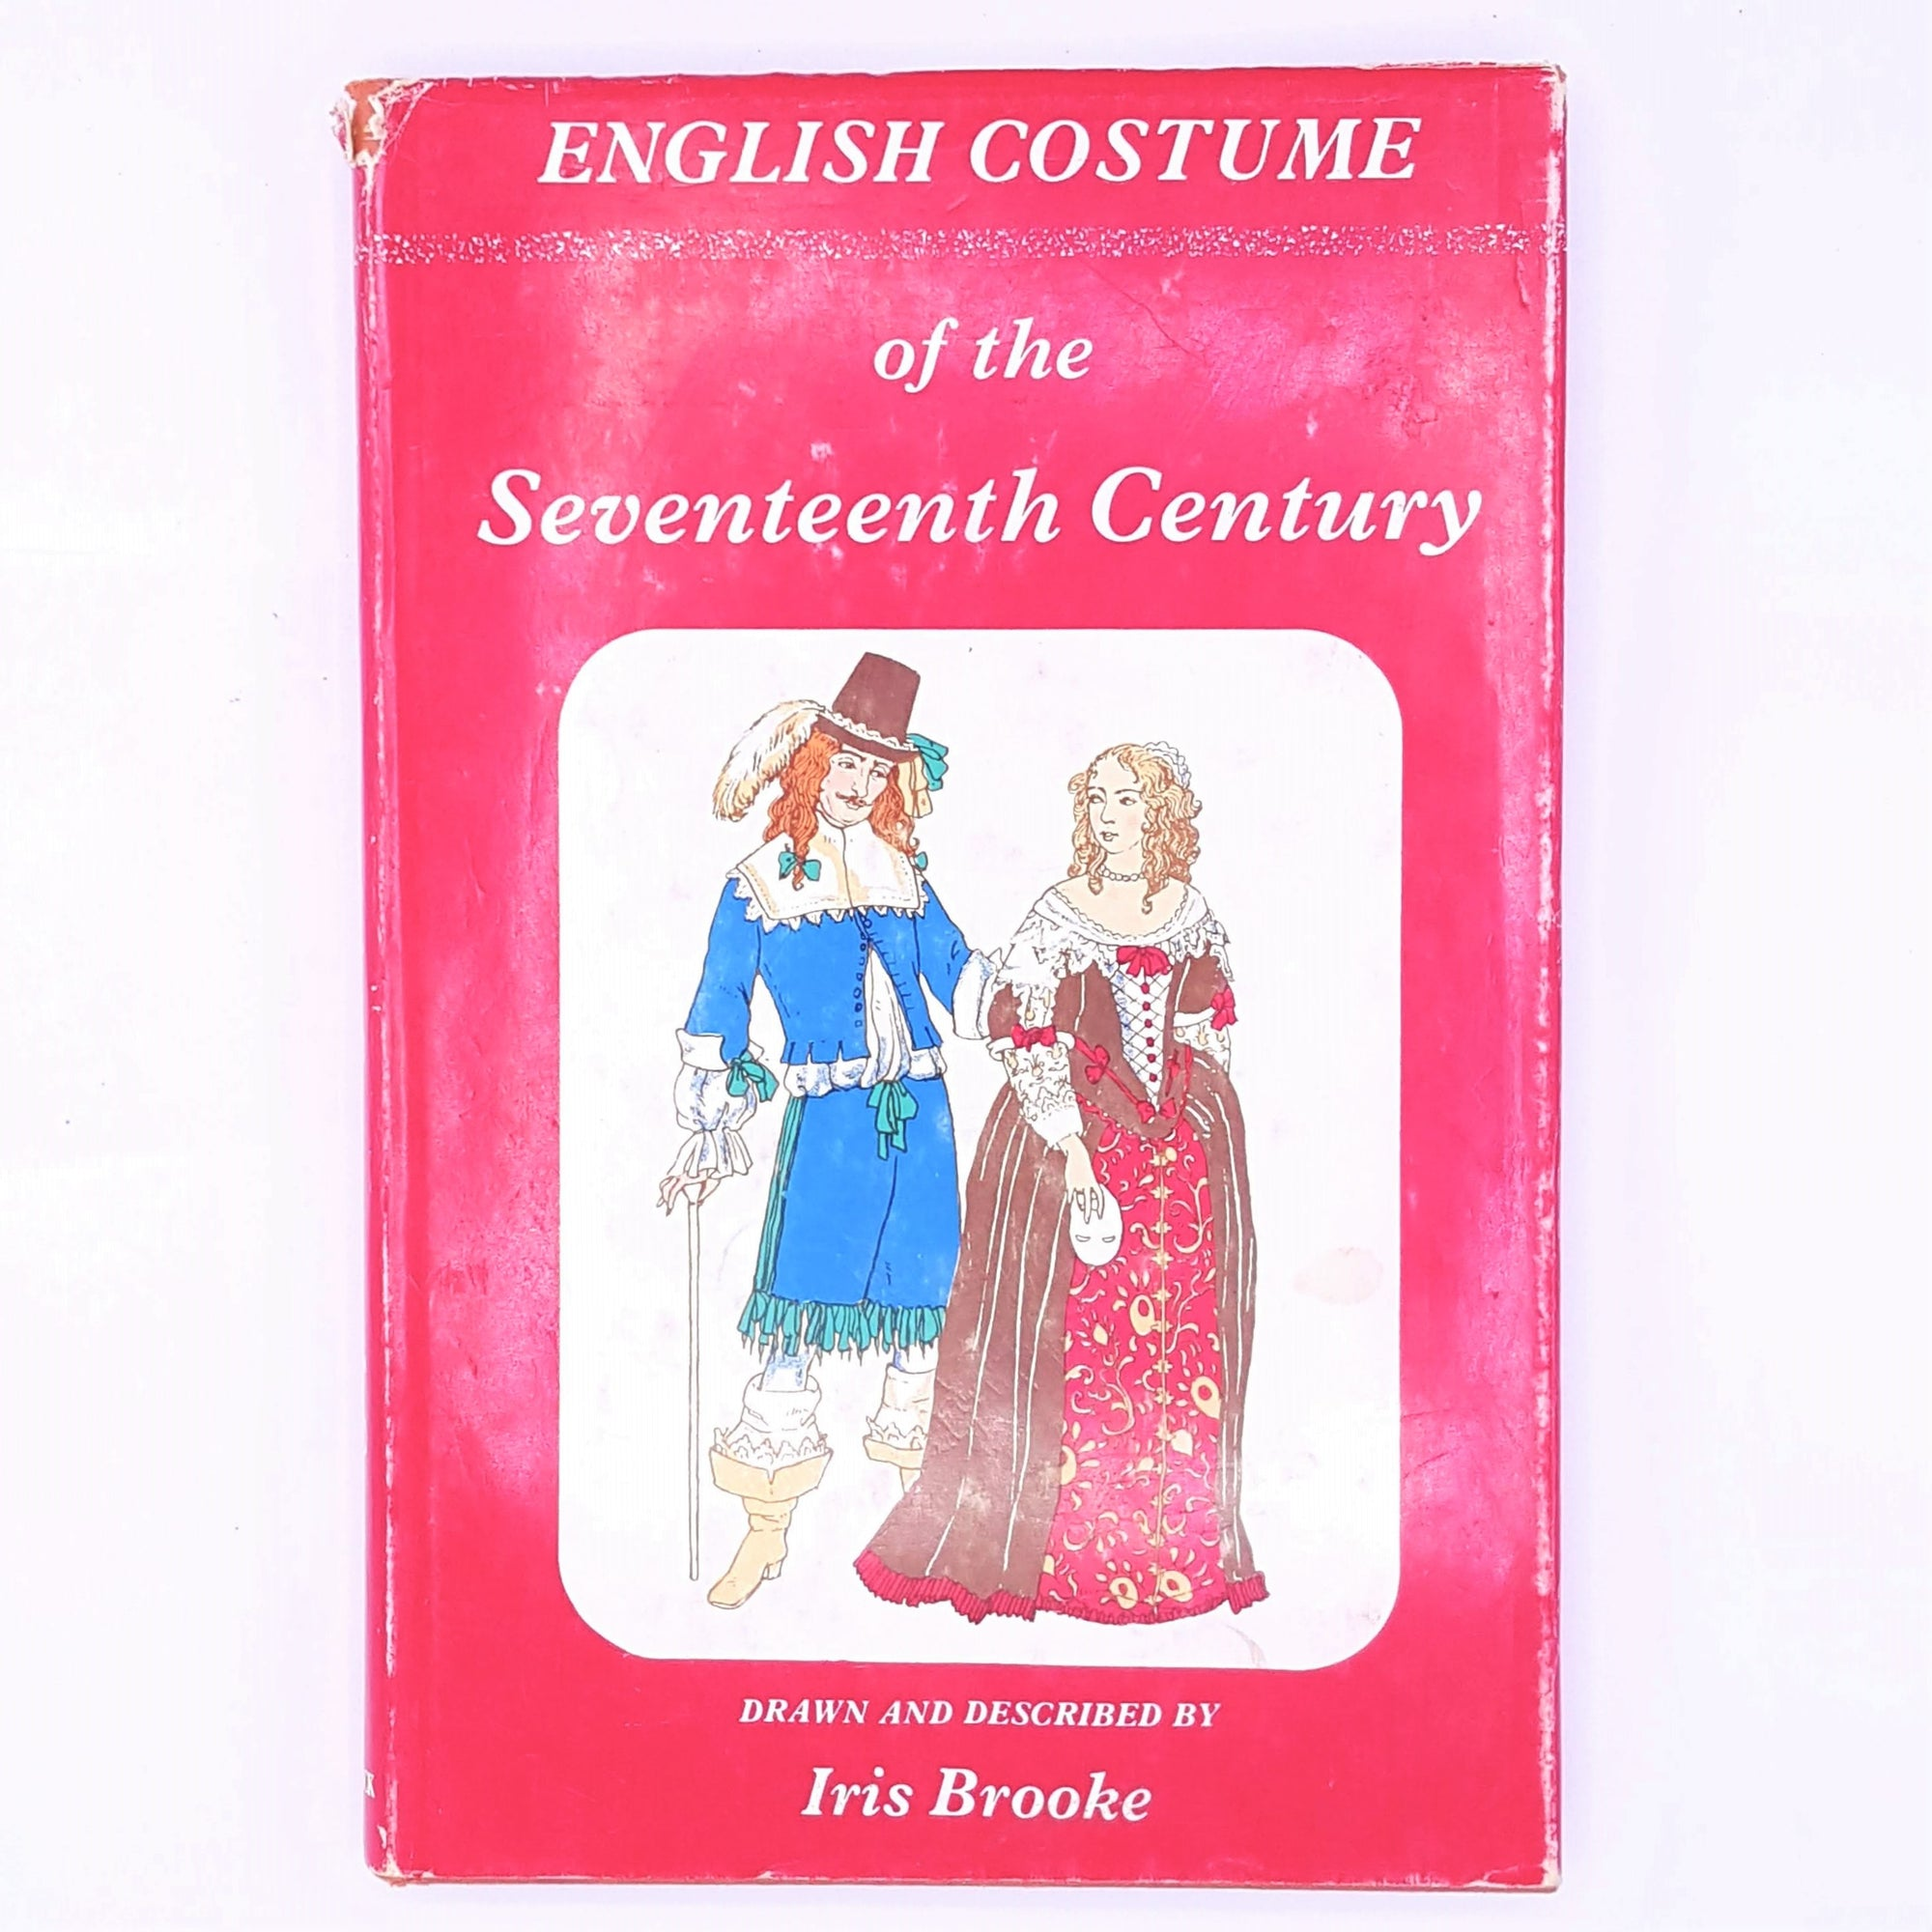 English Costume of the Seventeenth Century 1971